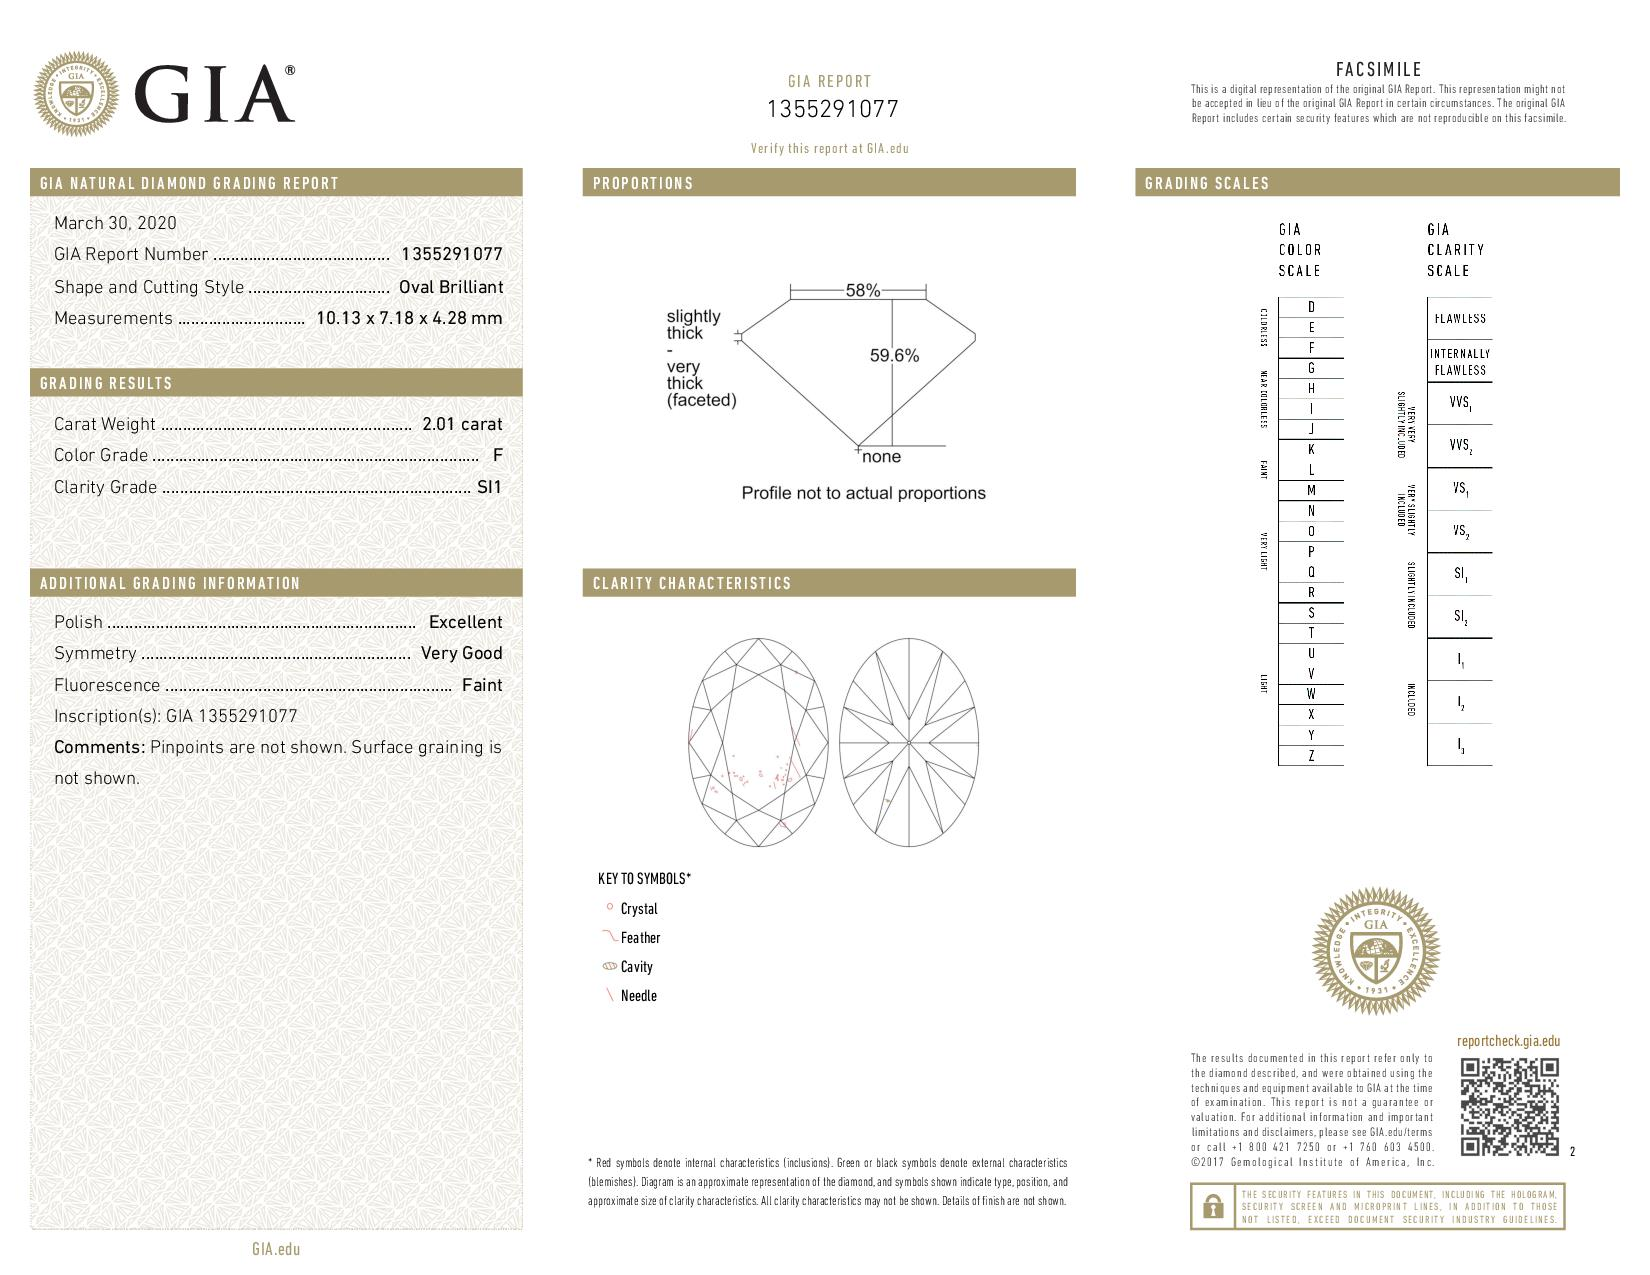 This is a 2.01 carat oval shape, F color, SI1 clarity natural diamond accompanied by a GIA grading report.